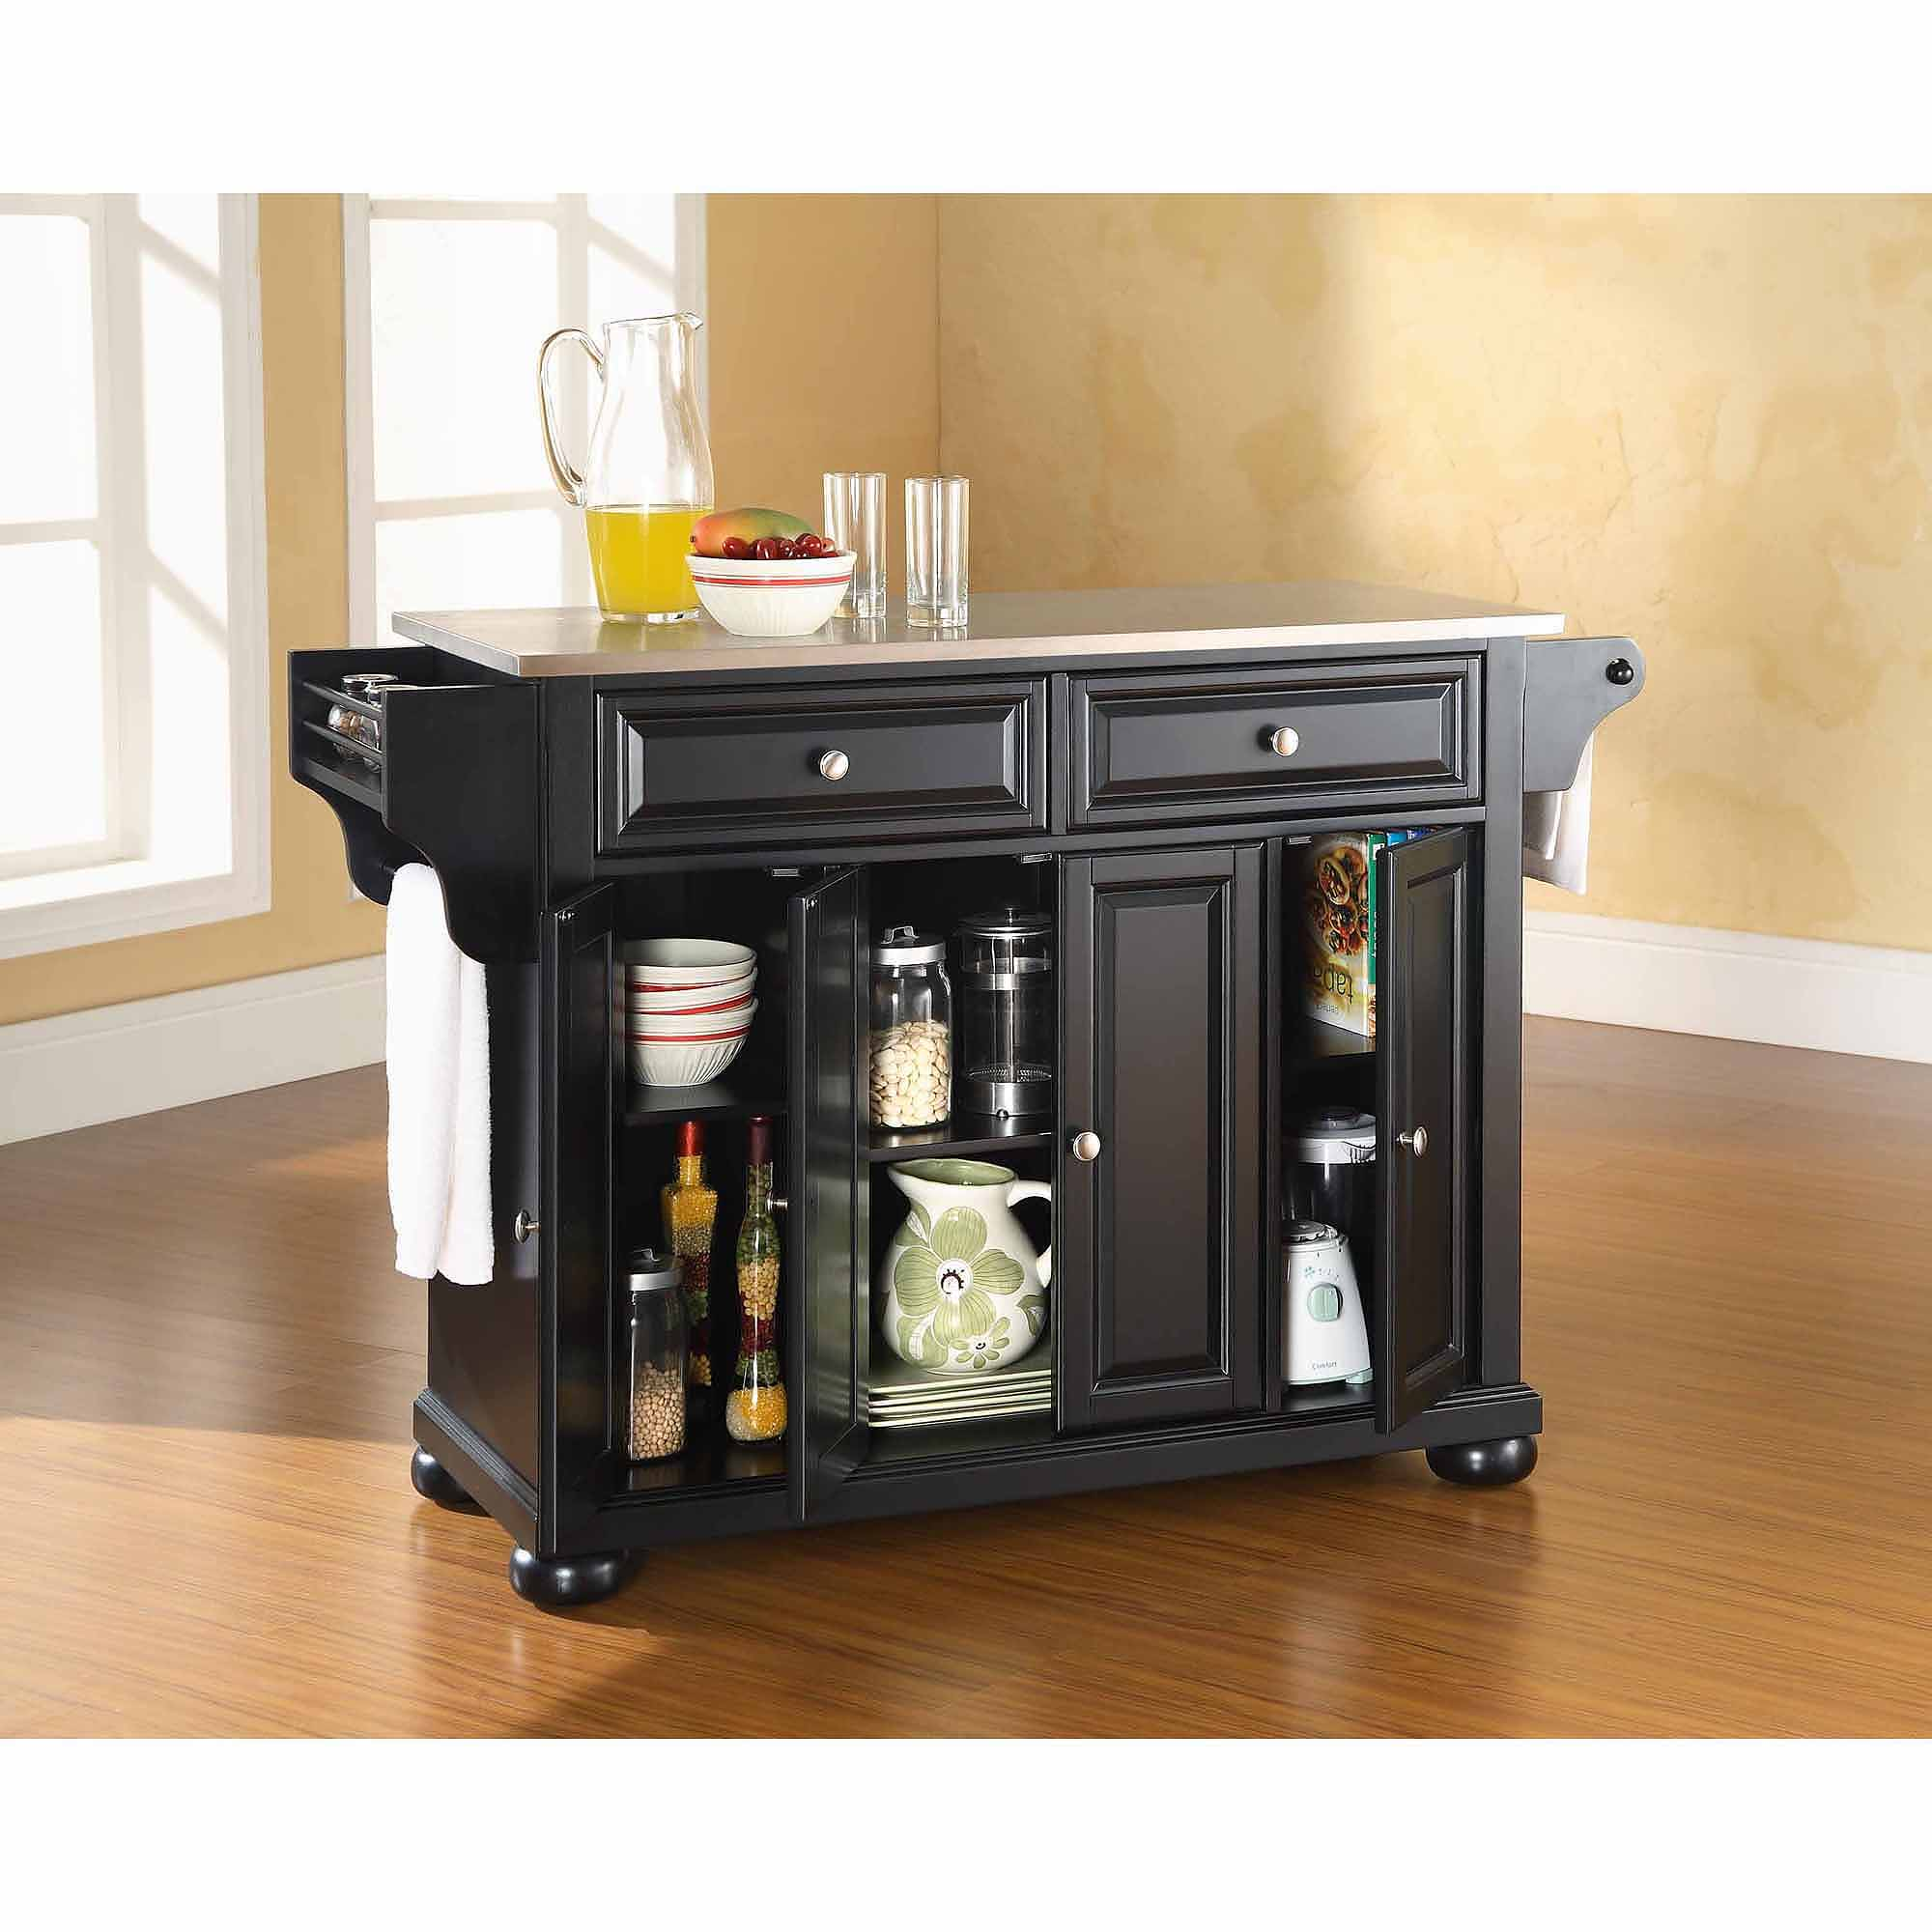 Charmant Crosley Furniture Alexandria Stainless Steel Top Kitchen Island